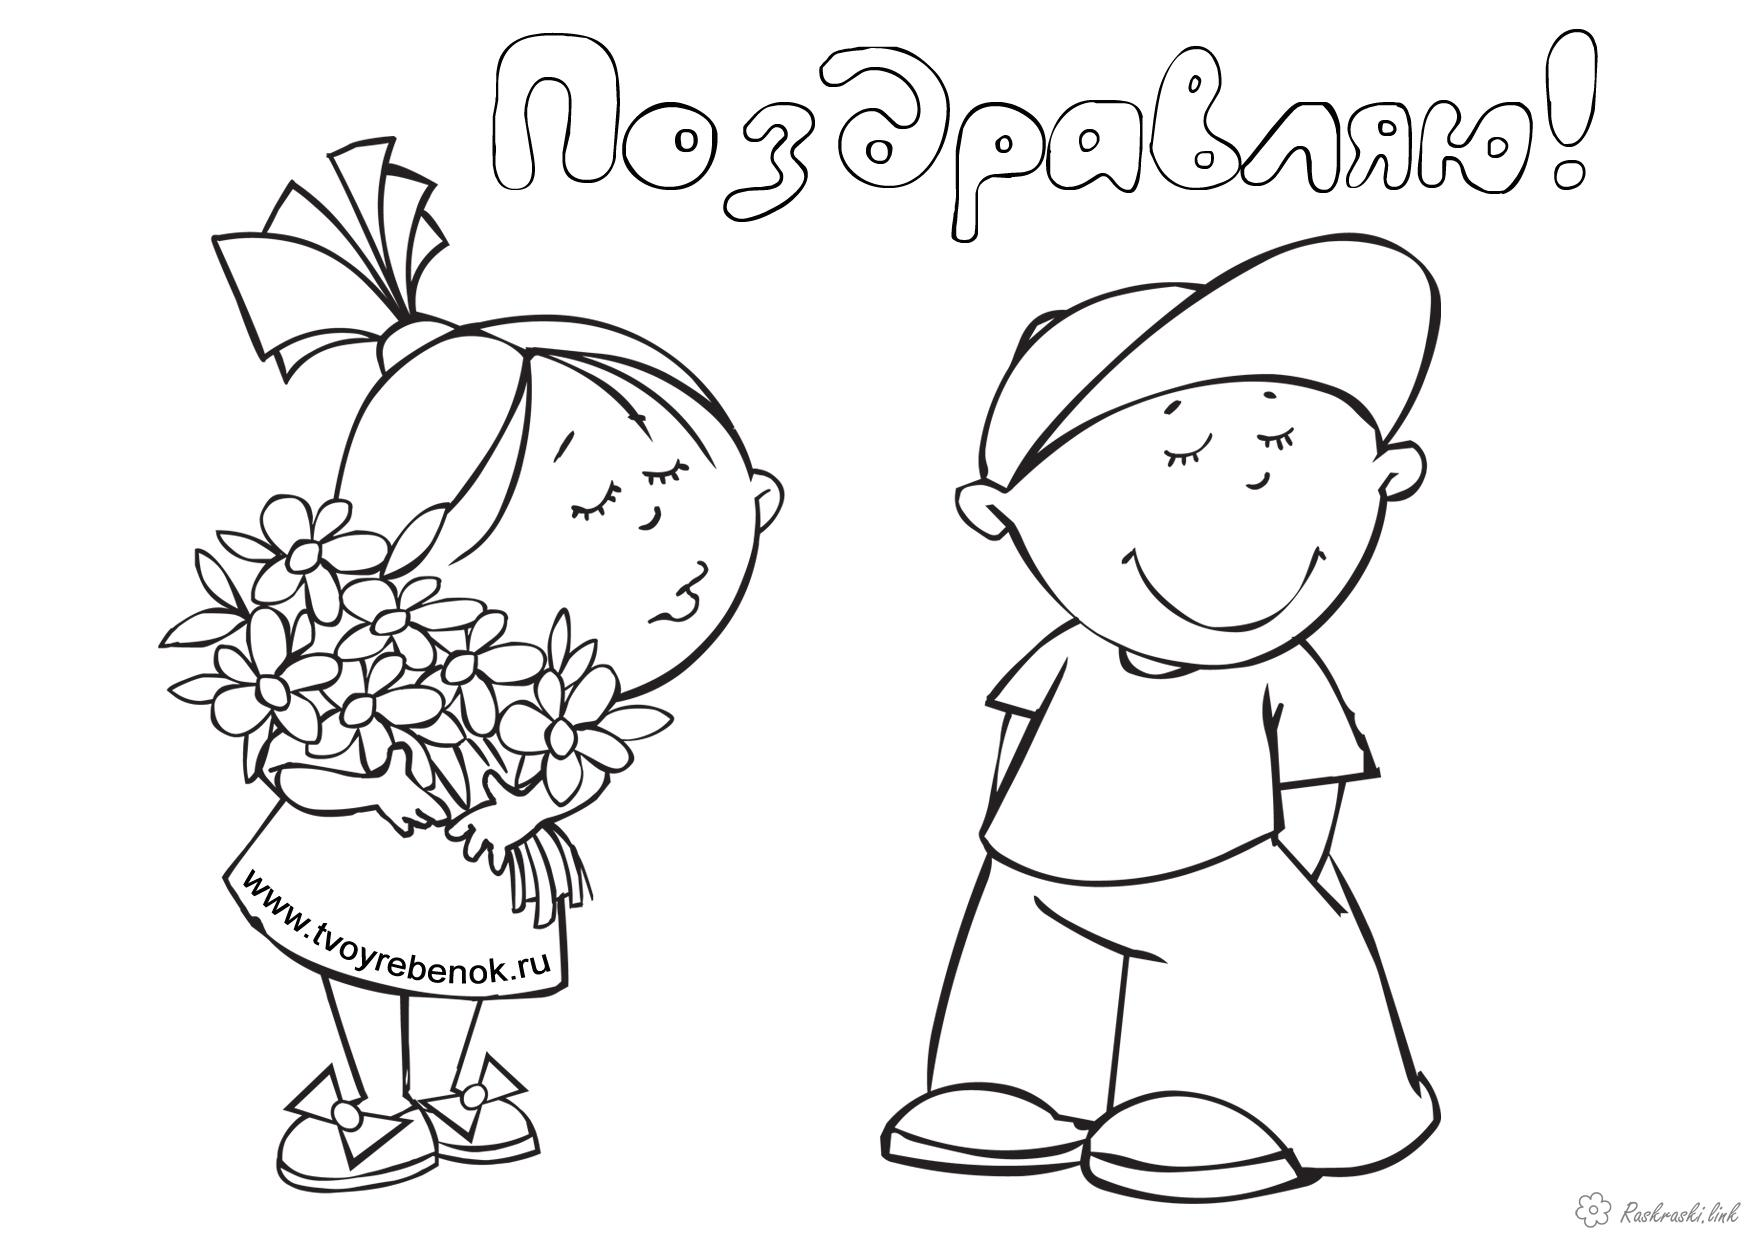 Coloring 1 September is the day of knowledge Children coloring pages to September 1